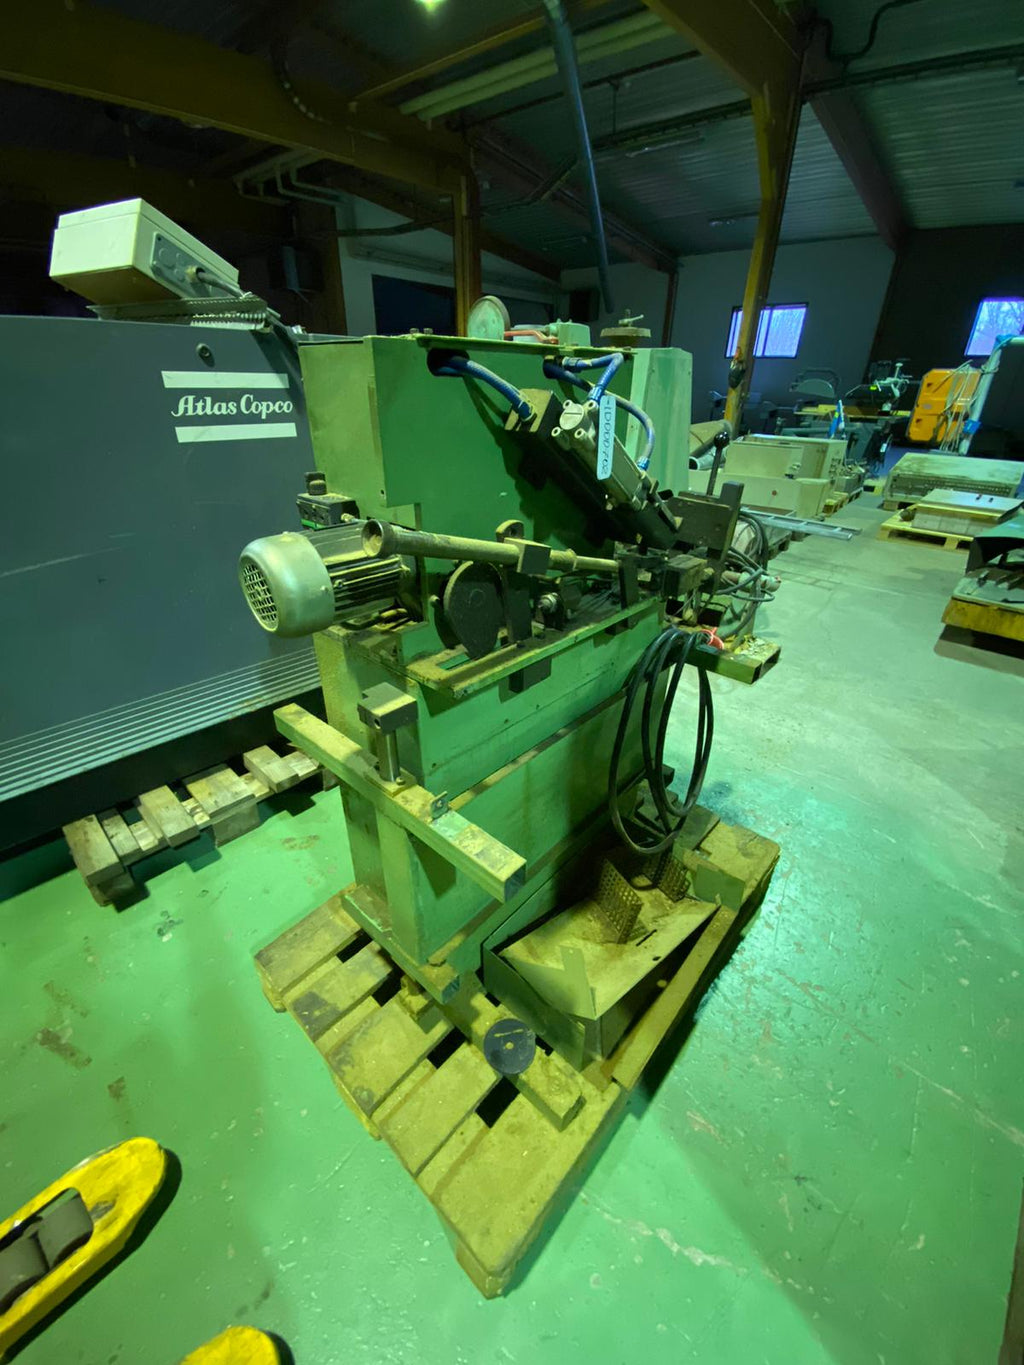 Jolting Machine Wedalco - Swedabo